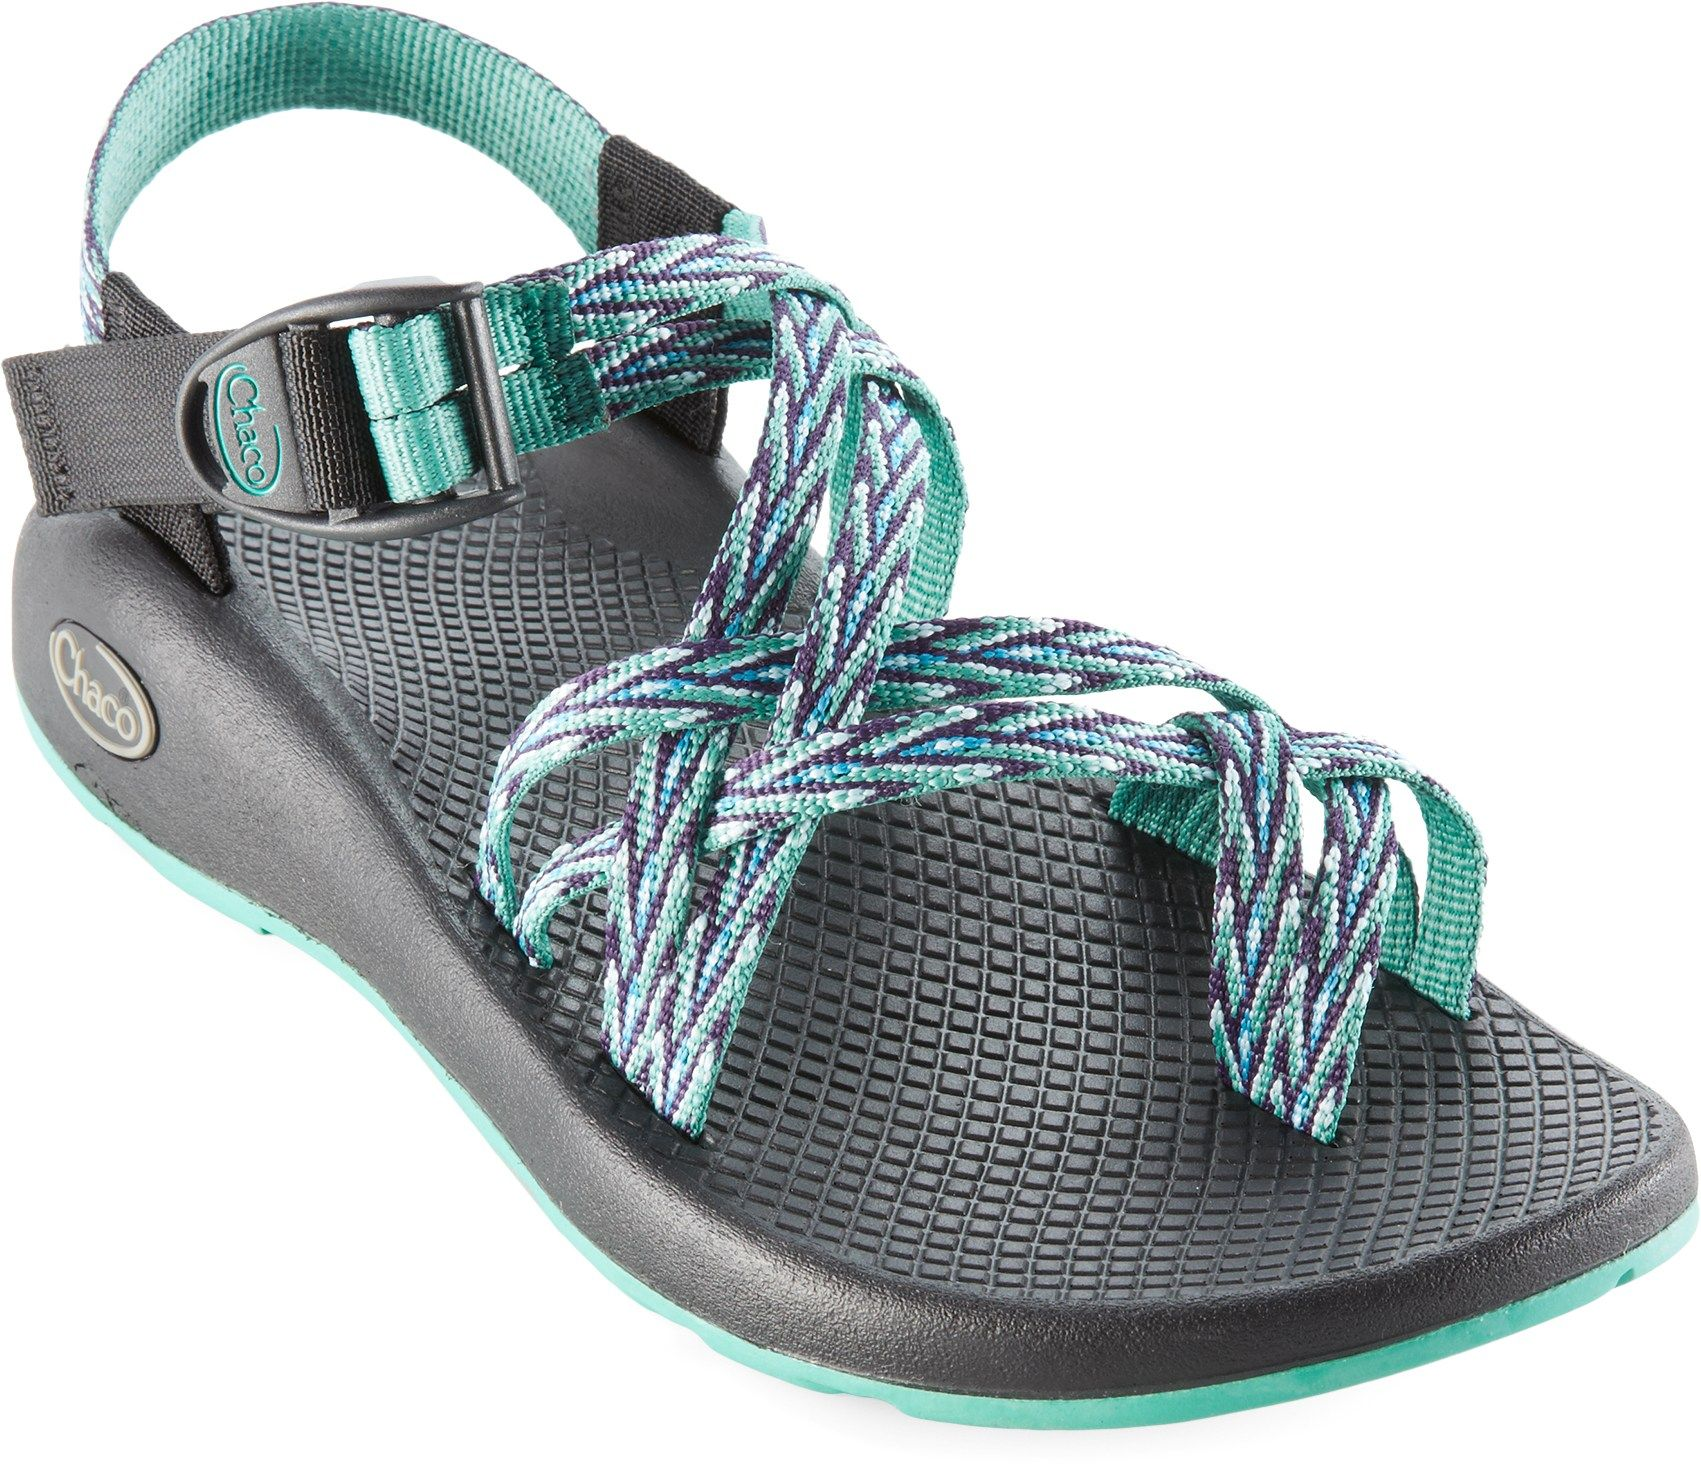 Chaco Women's ZX/2 Yampa Sandals Black 6 Medium